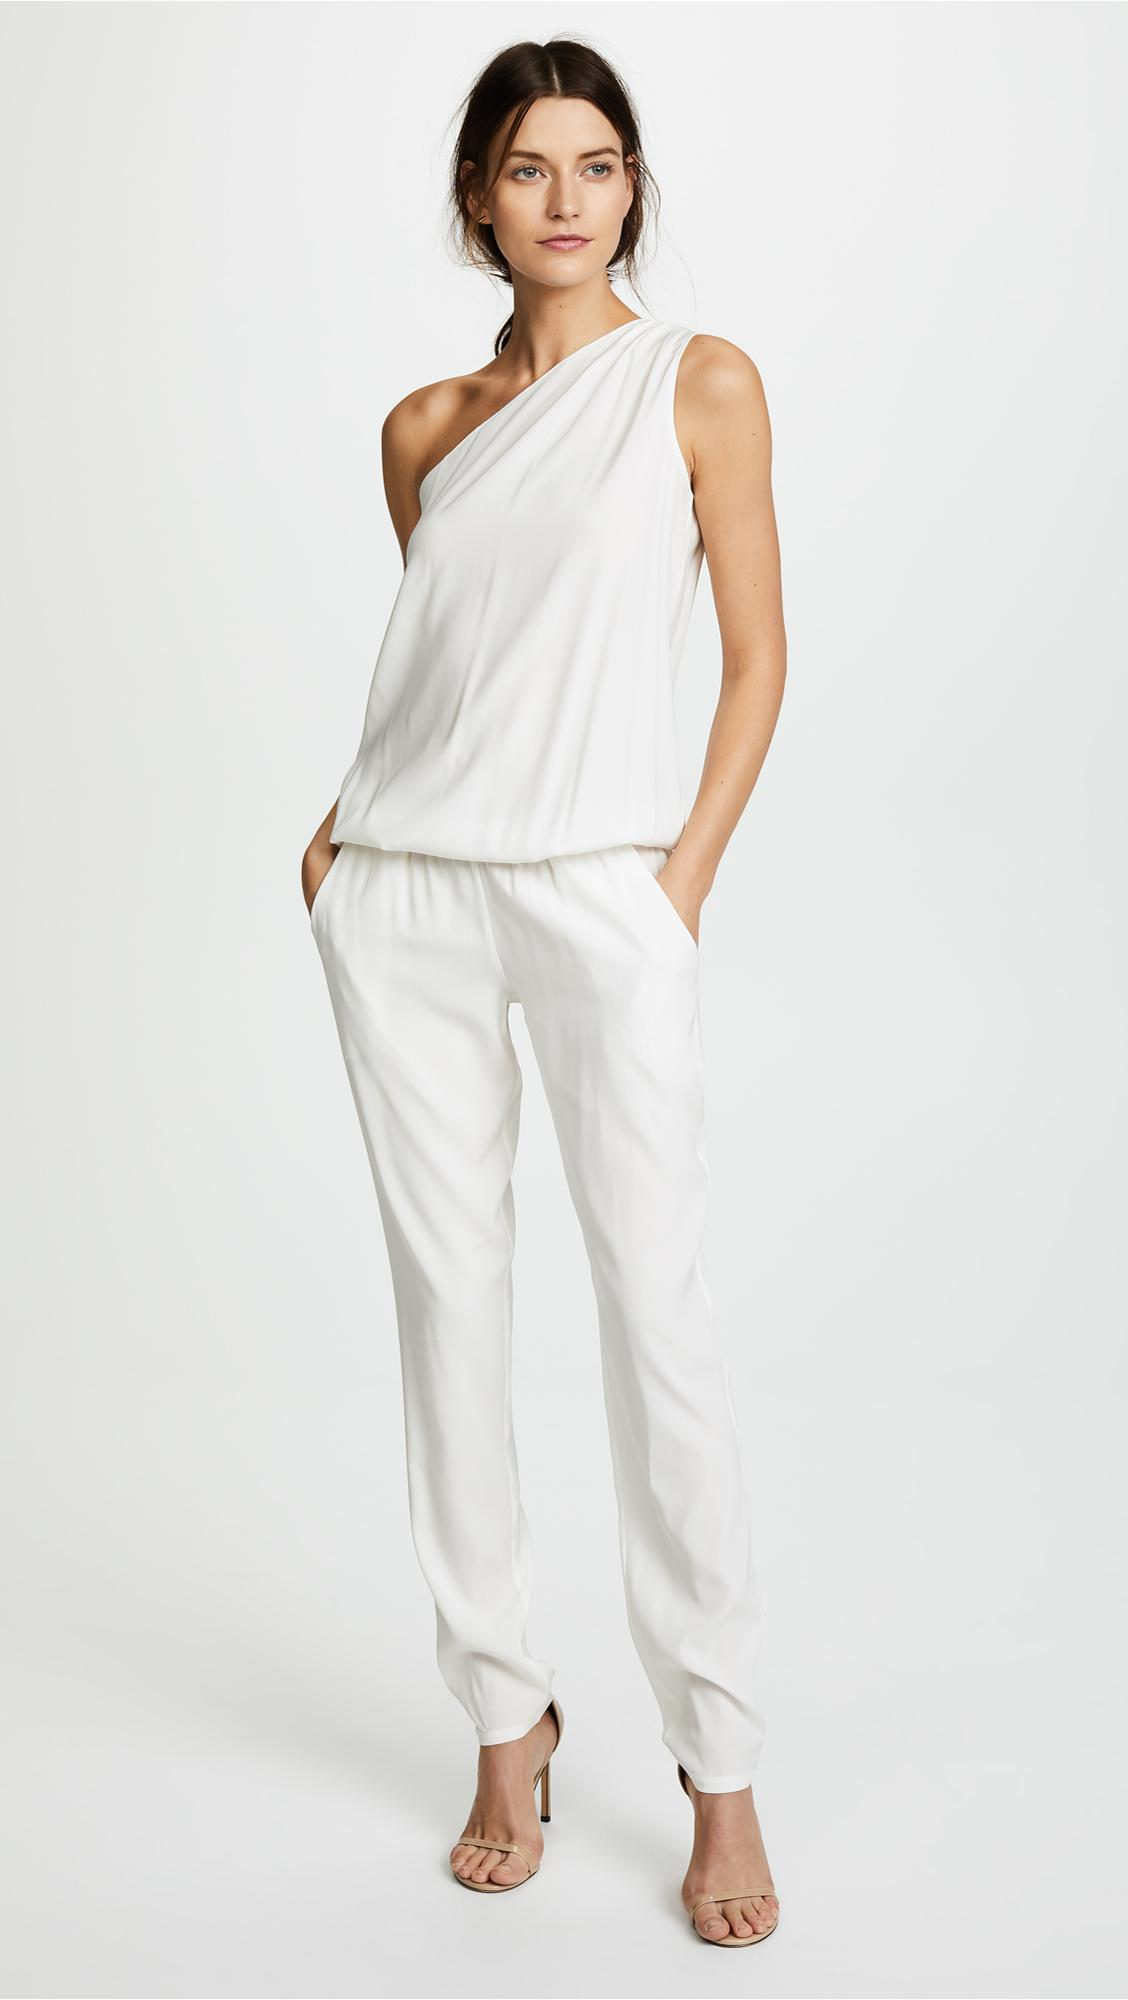 4a7eaf32898e Ramy Brook Lulu One Shoulder Jumpsuit in White - Save 14% - Lyst